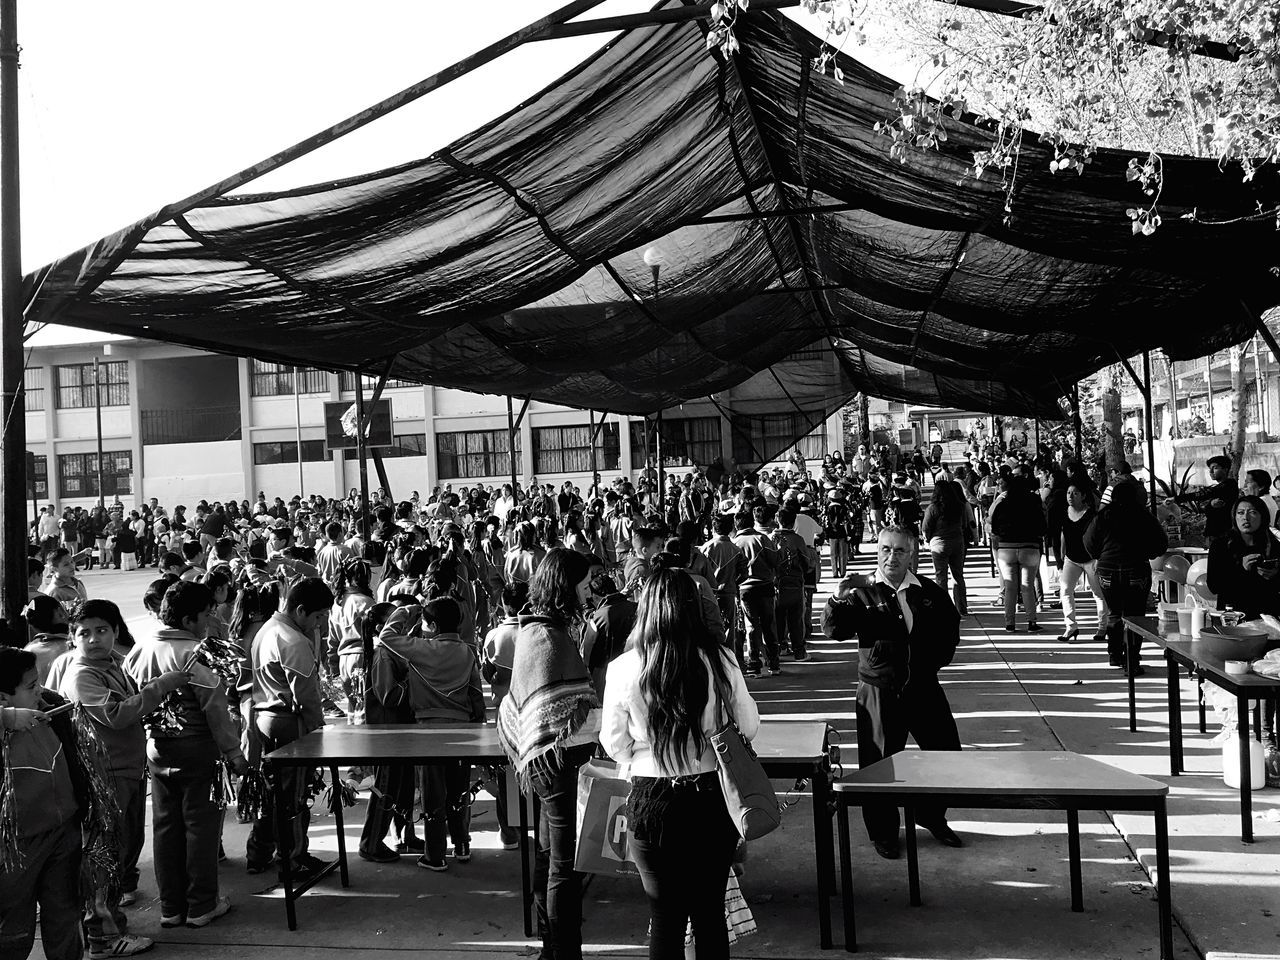 Enjoy The New Normal Large Group Of People Real People EyeEm Best Shots - Black + White